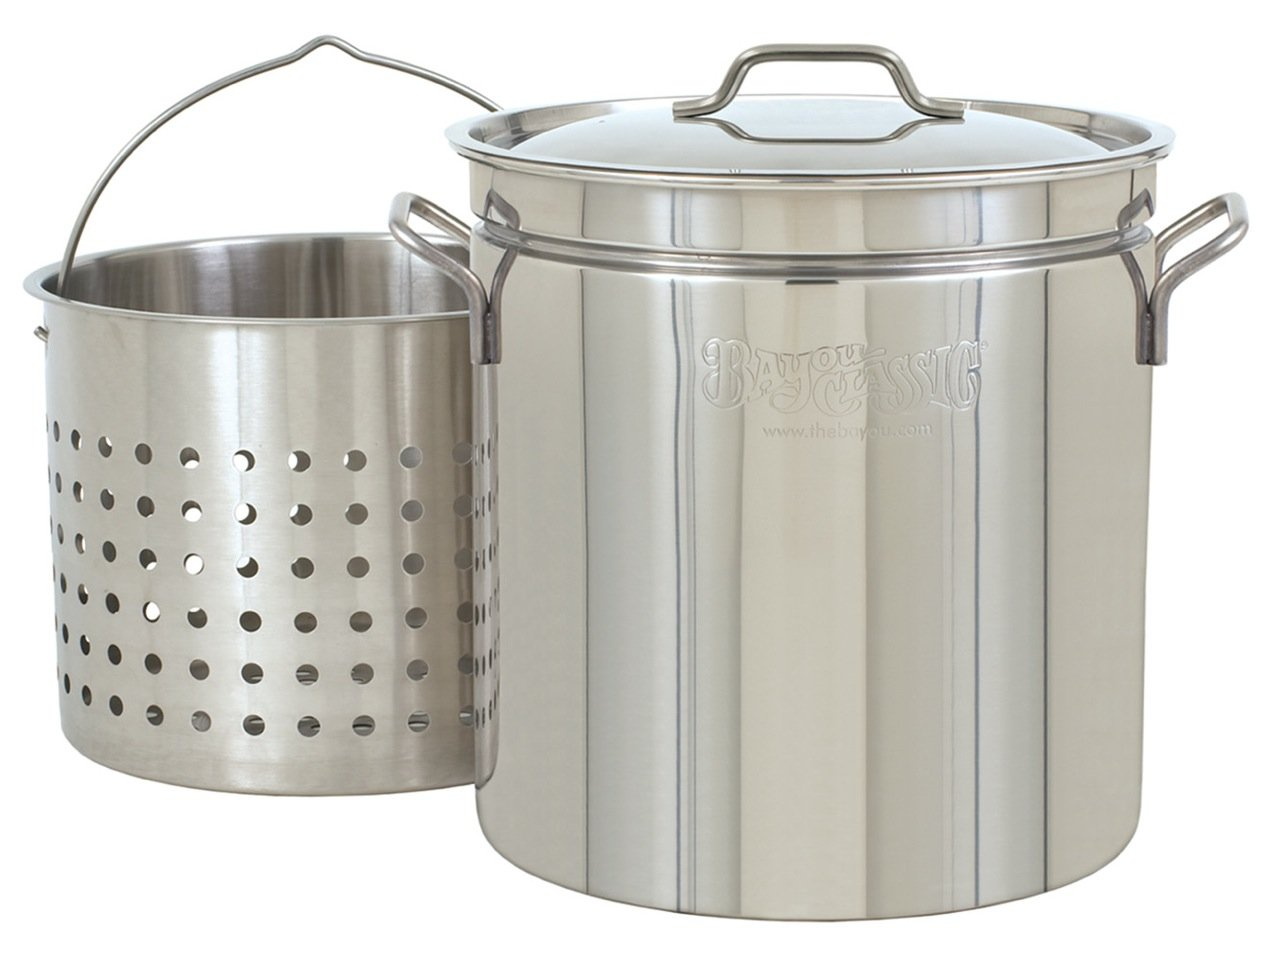 Bayou Classic 24-qt Stainless Stockpot by Bayou Classic